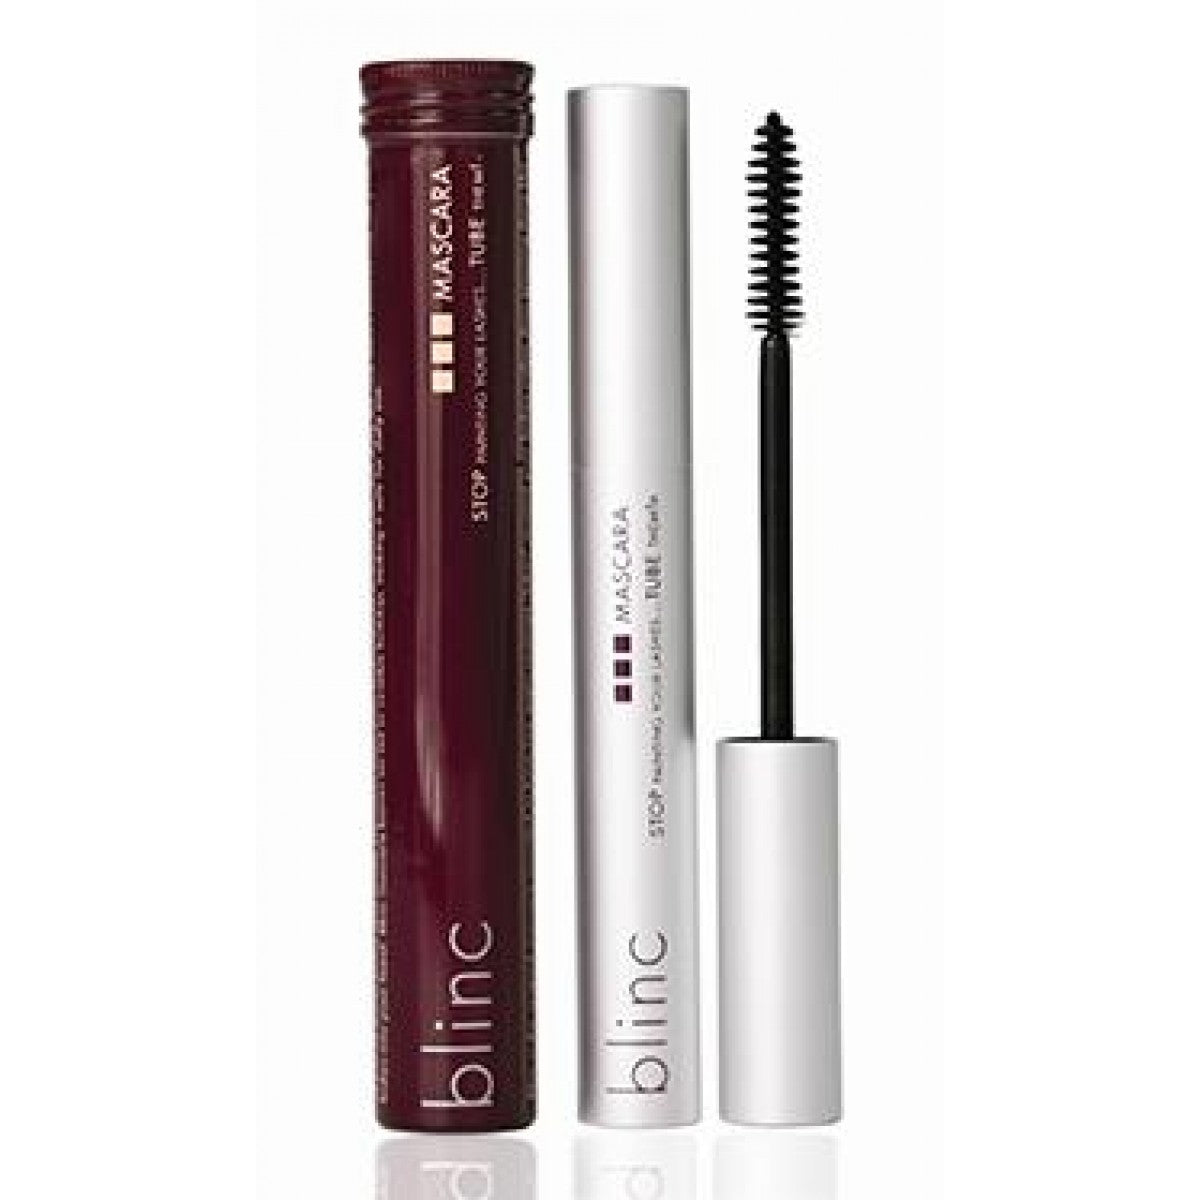 Blinc : Kiss Me Mascara